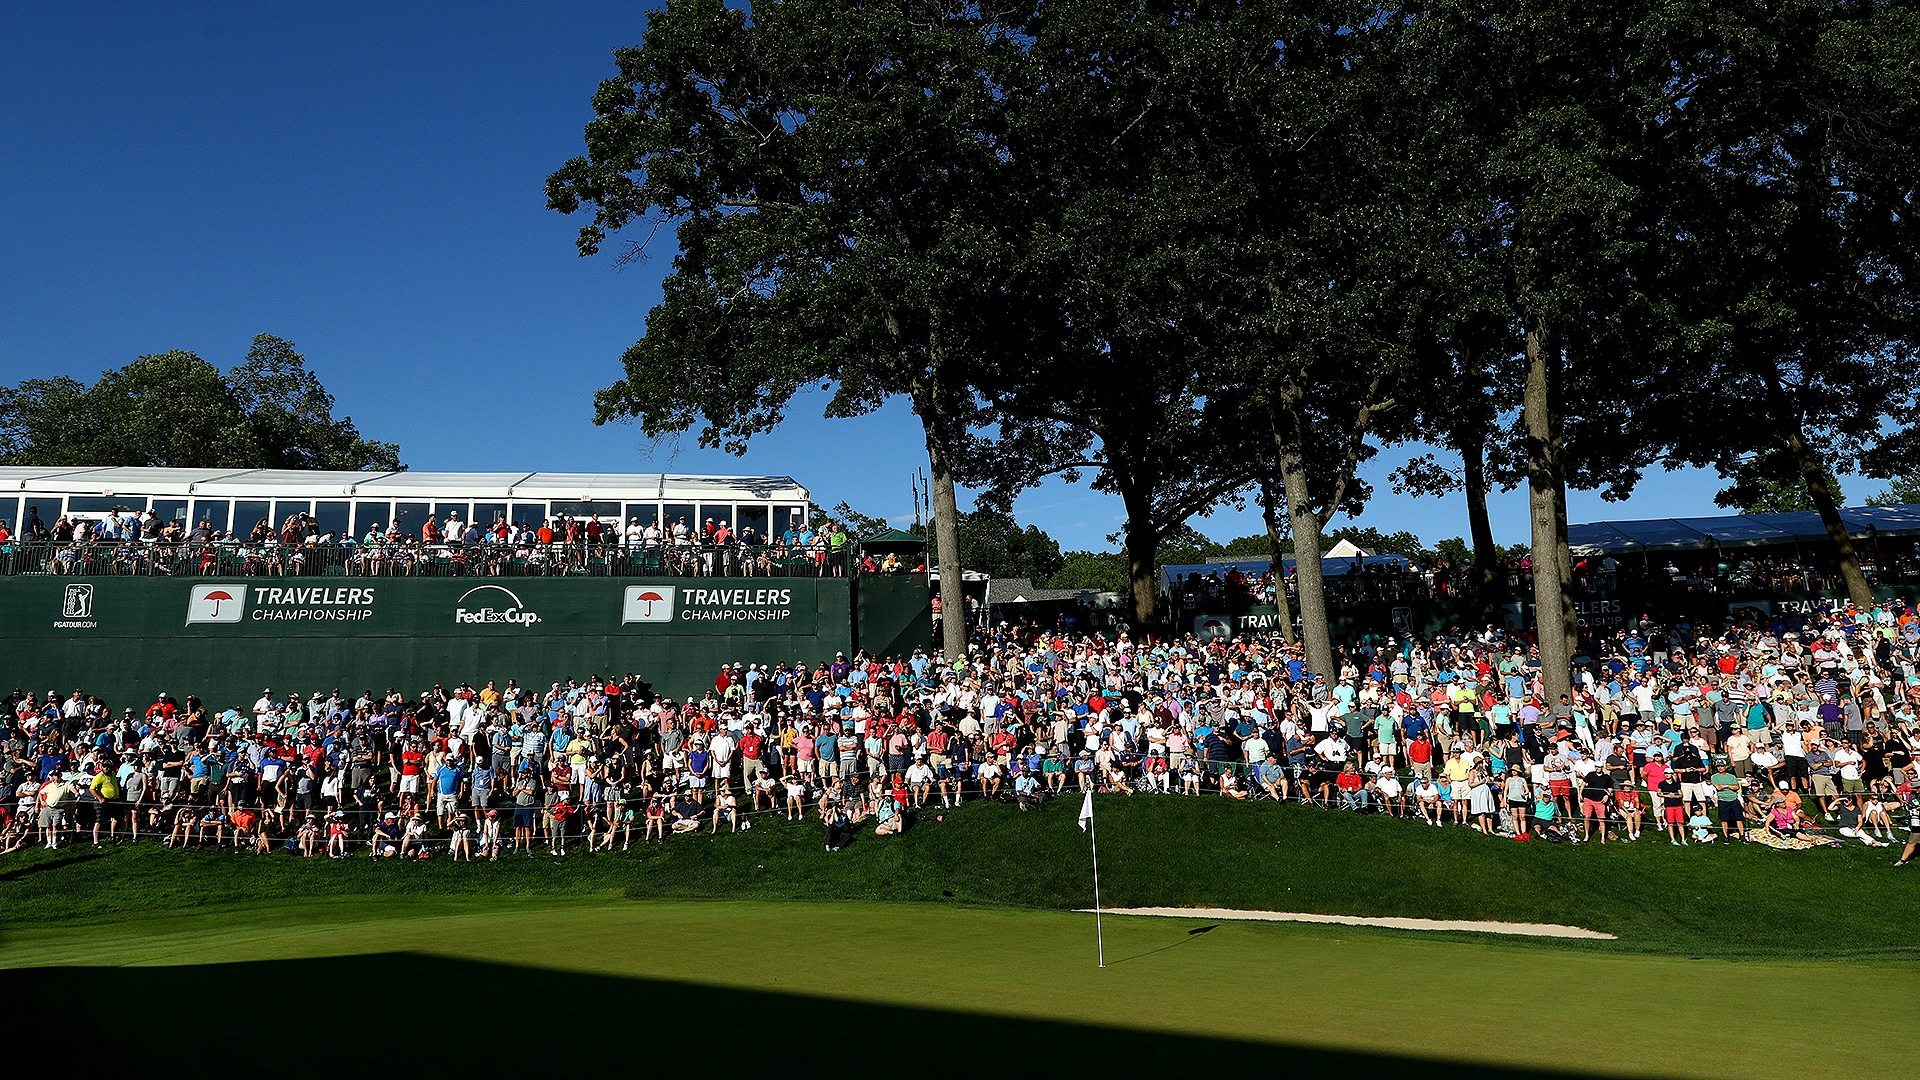 u s  open should take lesson from travelers